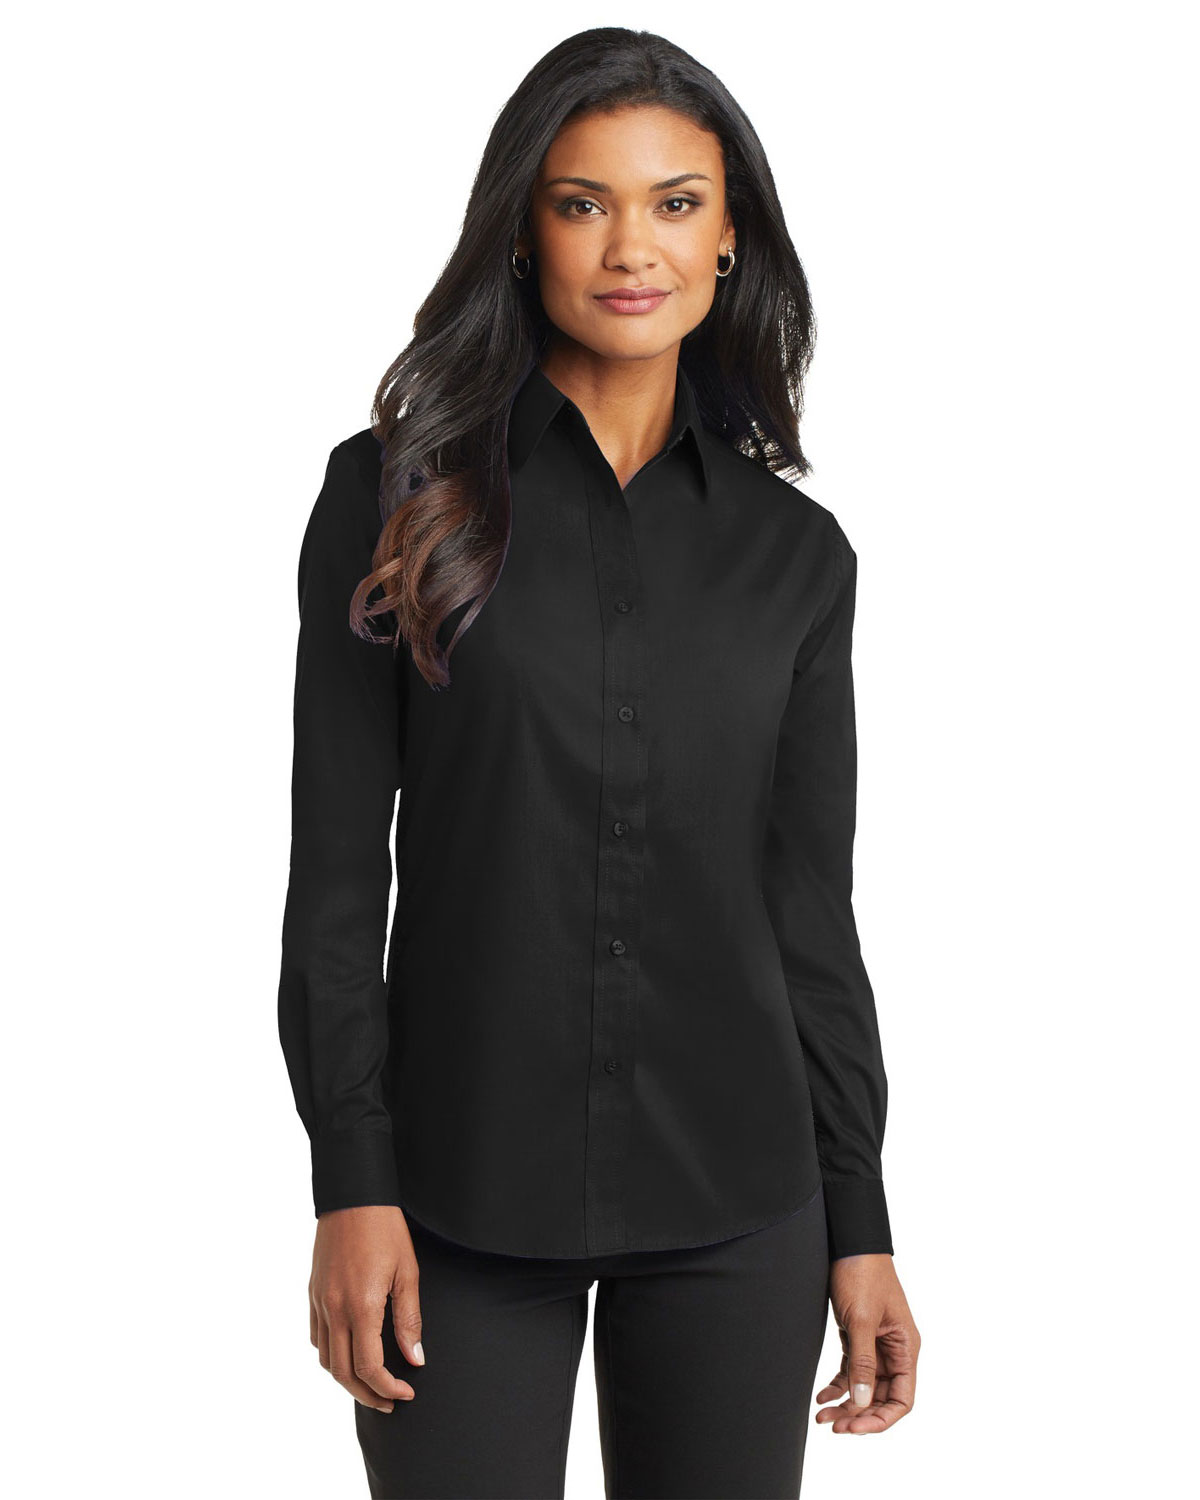 Black Long Sleeve Shirts. Clothing & Shoes / Women's Clothing / Tops / Long Sleeve Shirts. of 2, Results. Black; SALE. More Options. Quick View. Sale $ T Flex Womens Long Sleeve T-Shirt 2 Pack, Underscrub Tee Layering Shirt. 1 Review. Quick View.